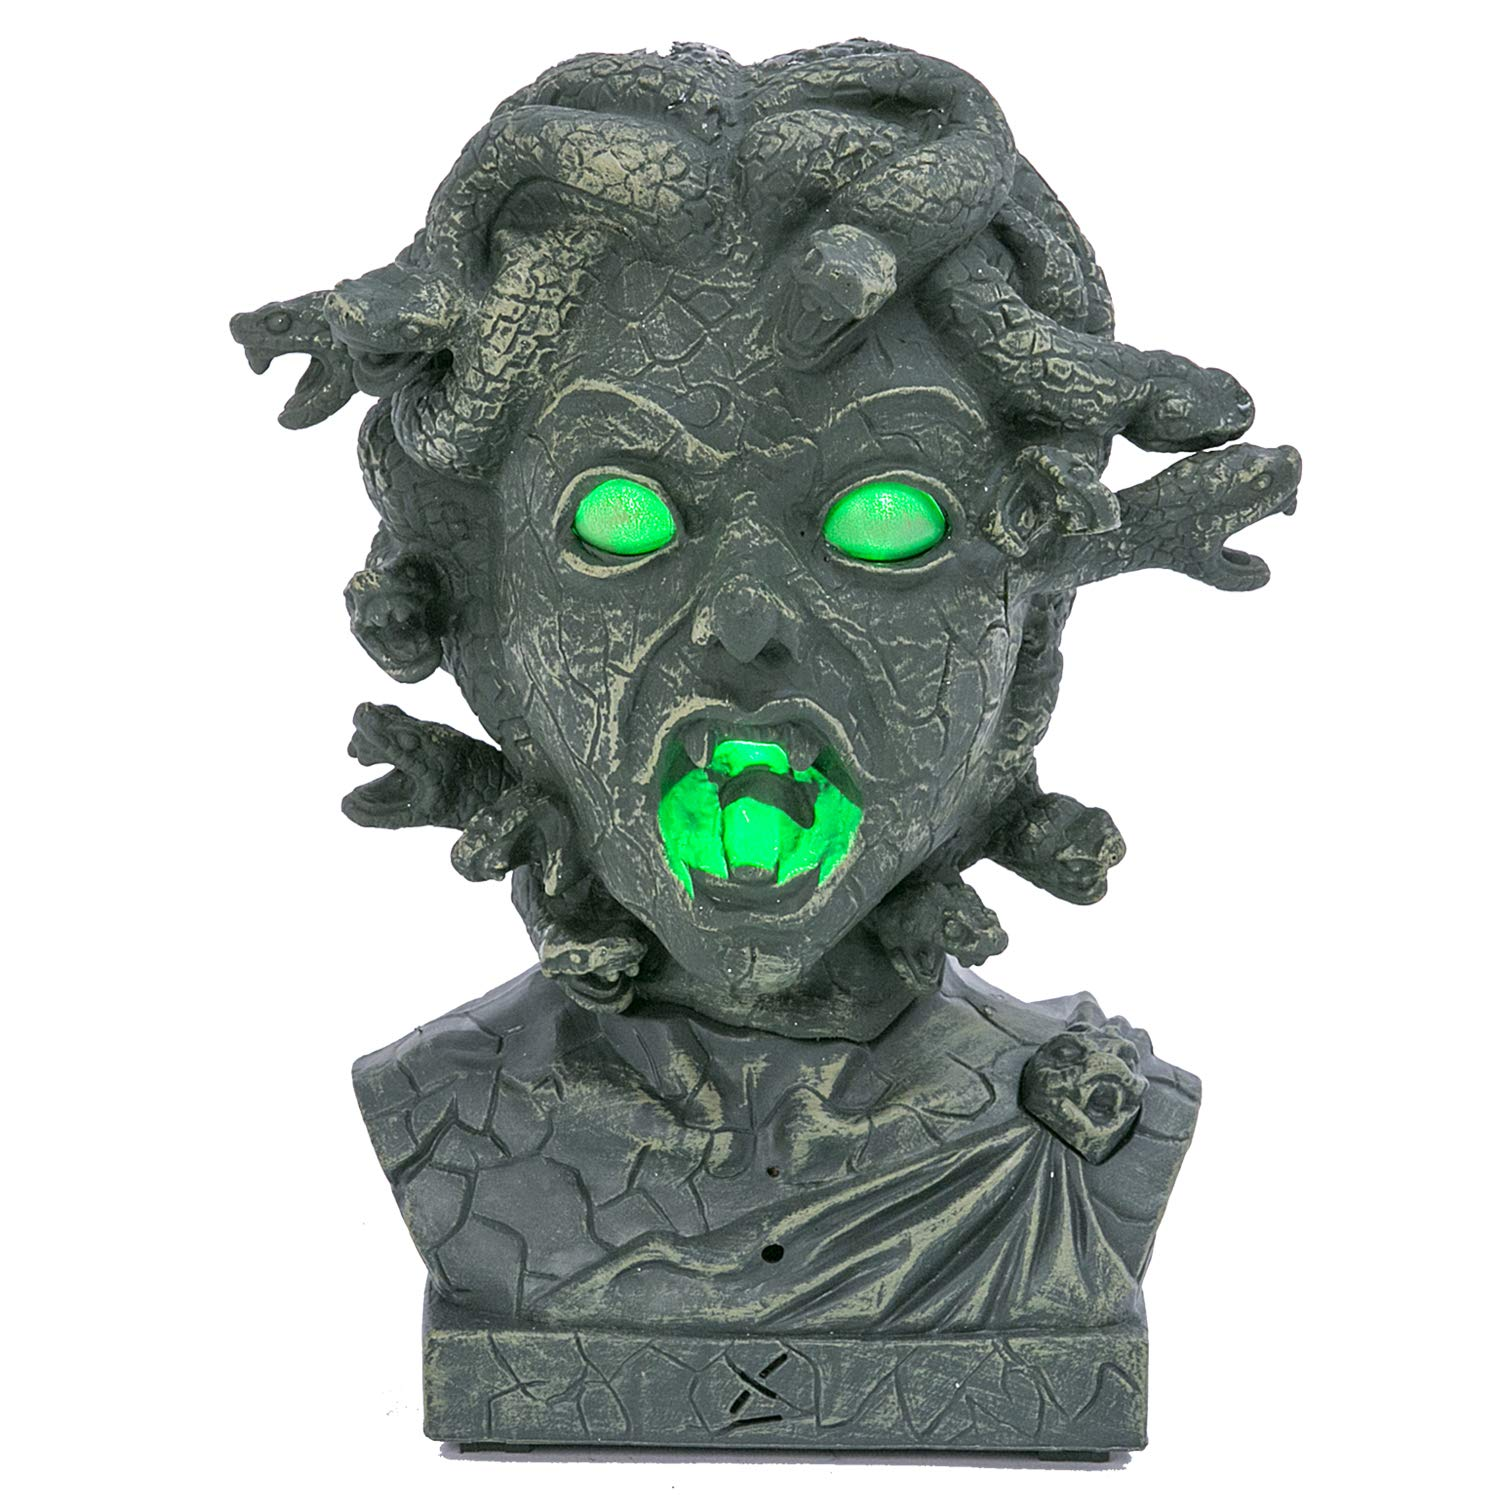 One Holiday Way Creepy Light Up Animated Medusa Halloween Bust - Tabletop Halloween Decoration by One Holiday Way